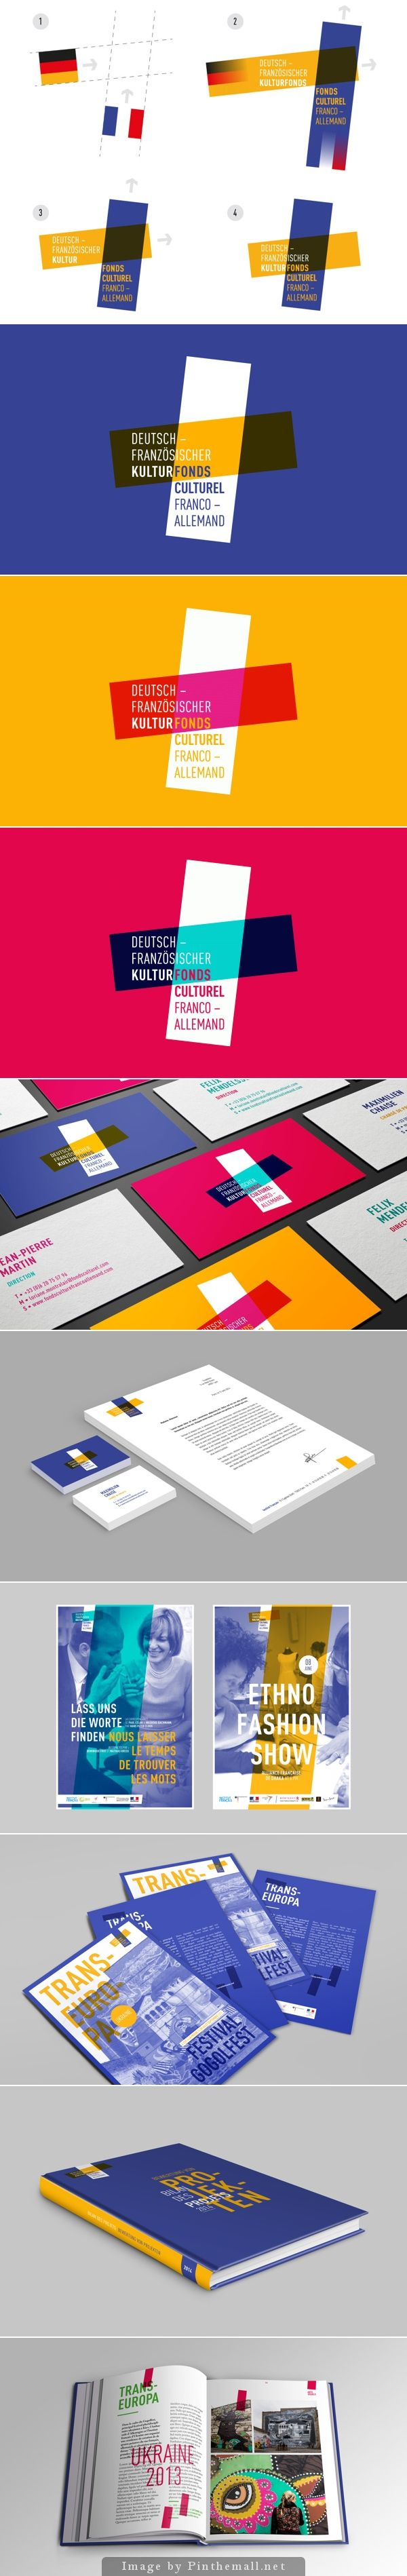 french german inspired logo / identity system